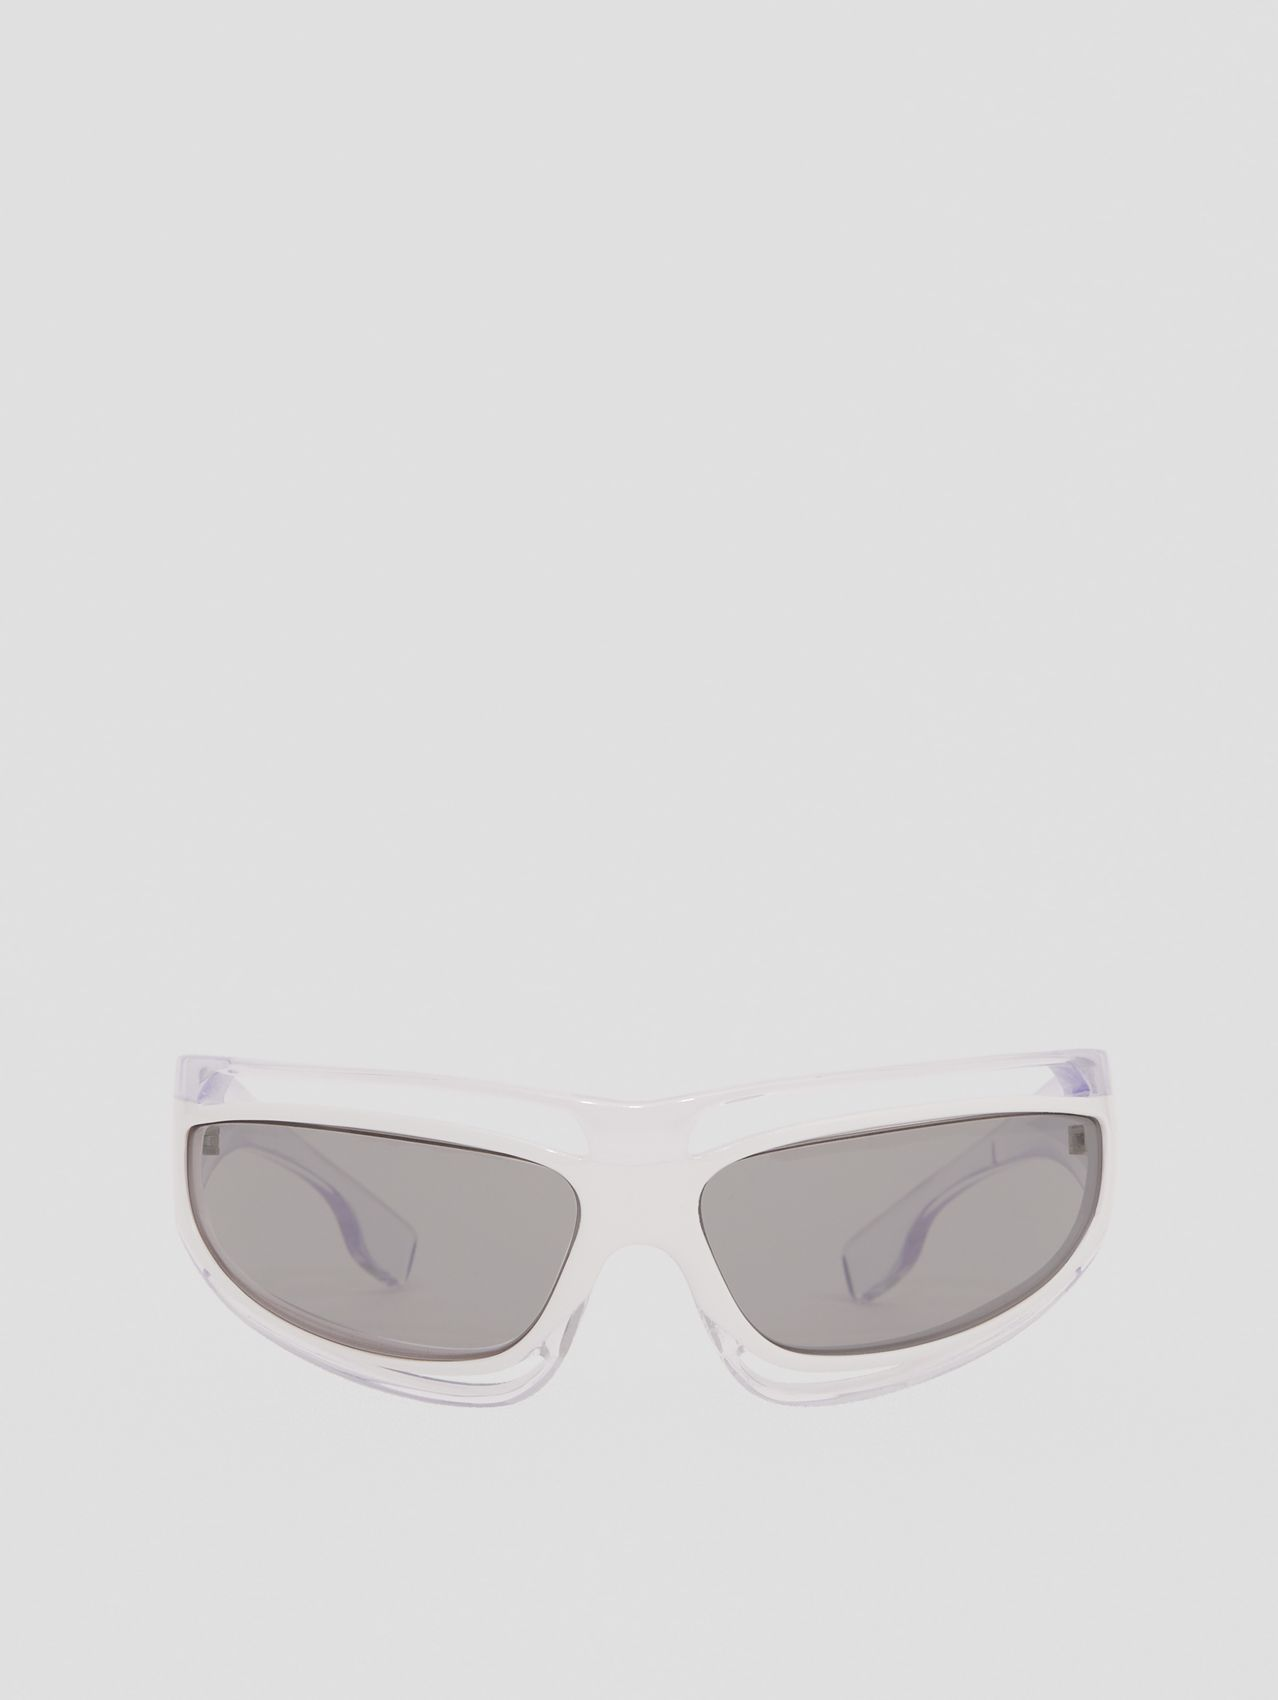 Eliot Sunglasses in White